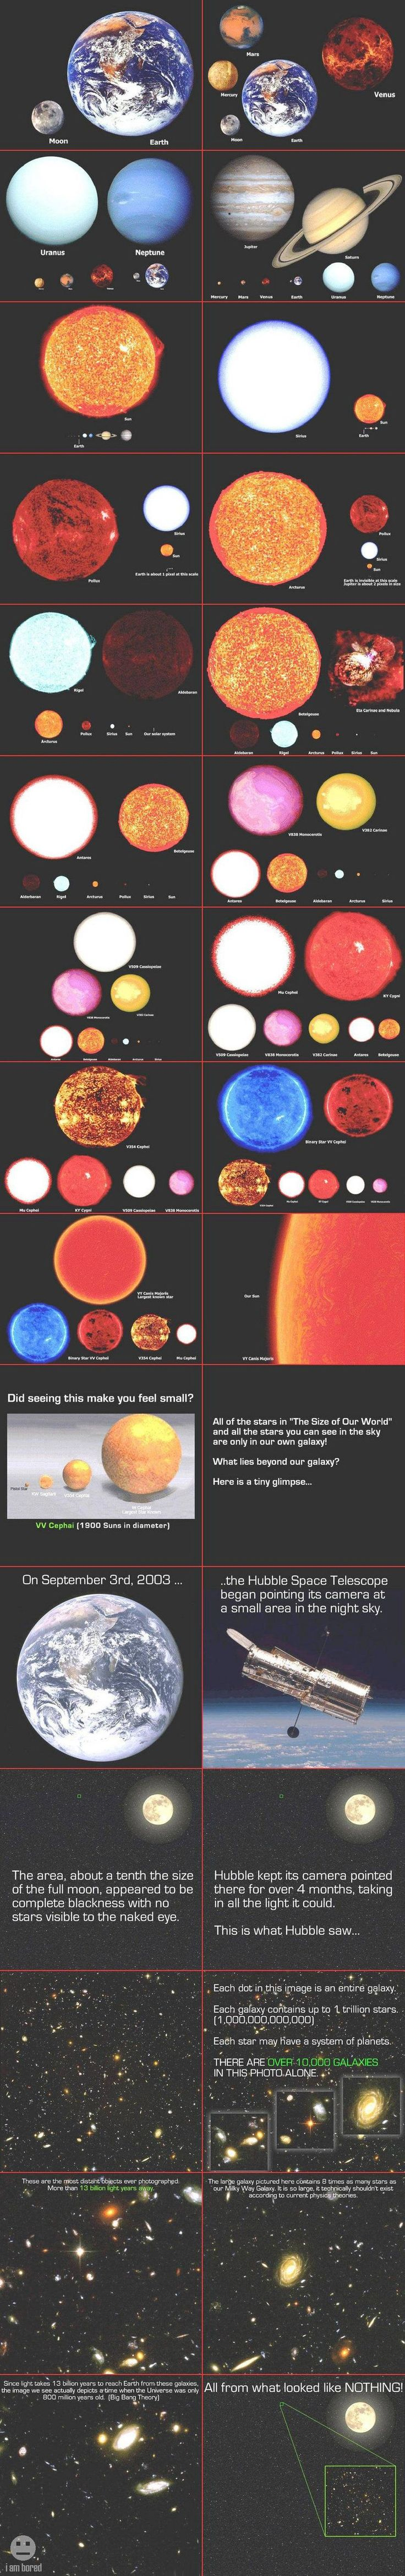 Planet size comparisons and an amazing photo taken of a very dark area in space only to reveal over 10,000 galaxies